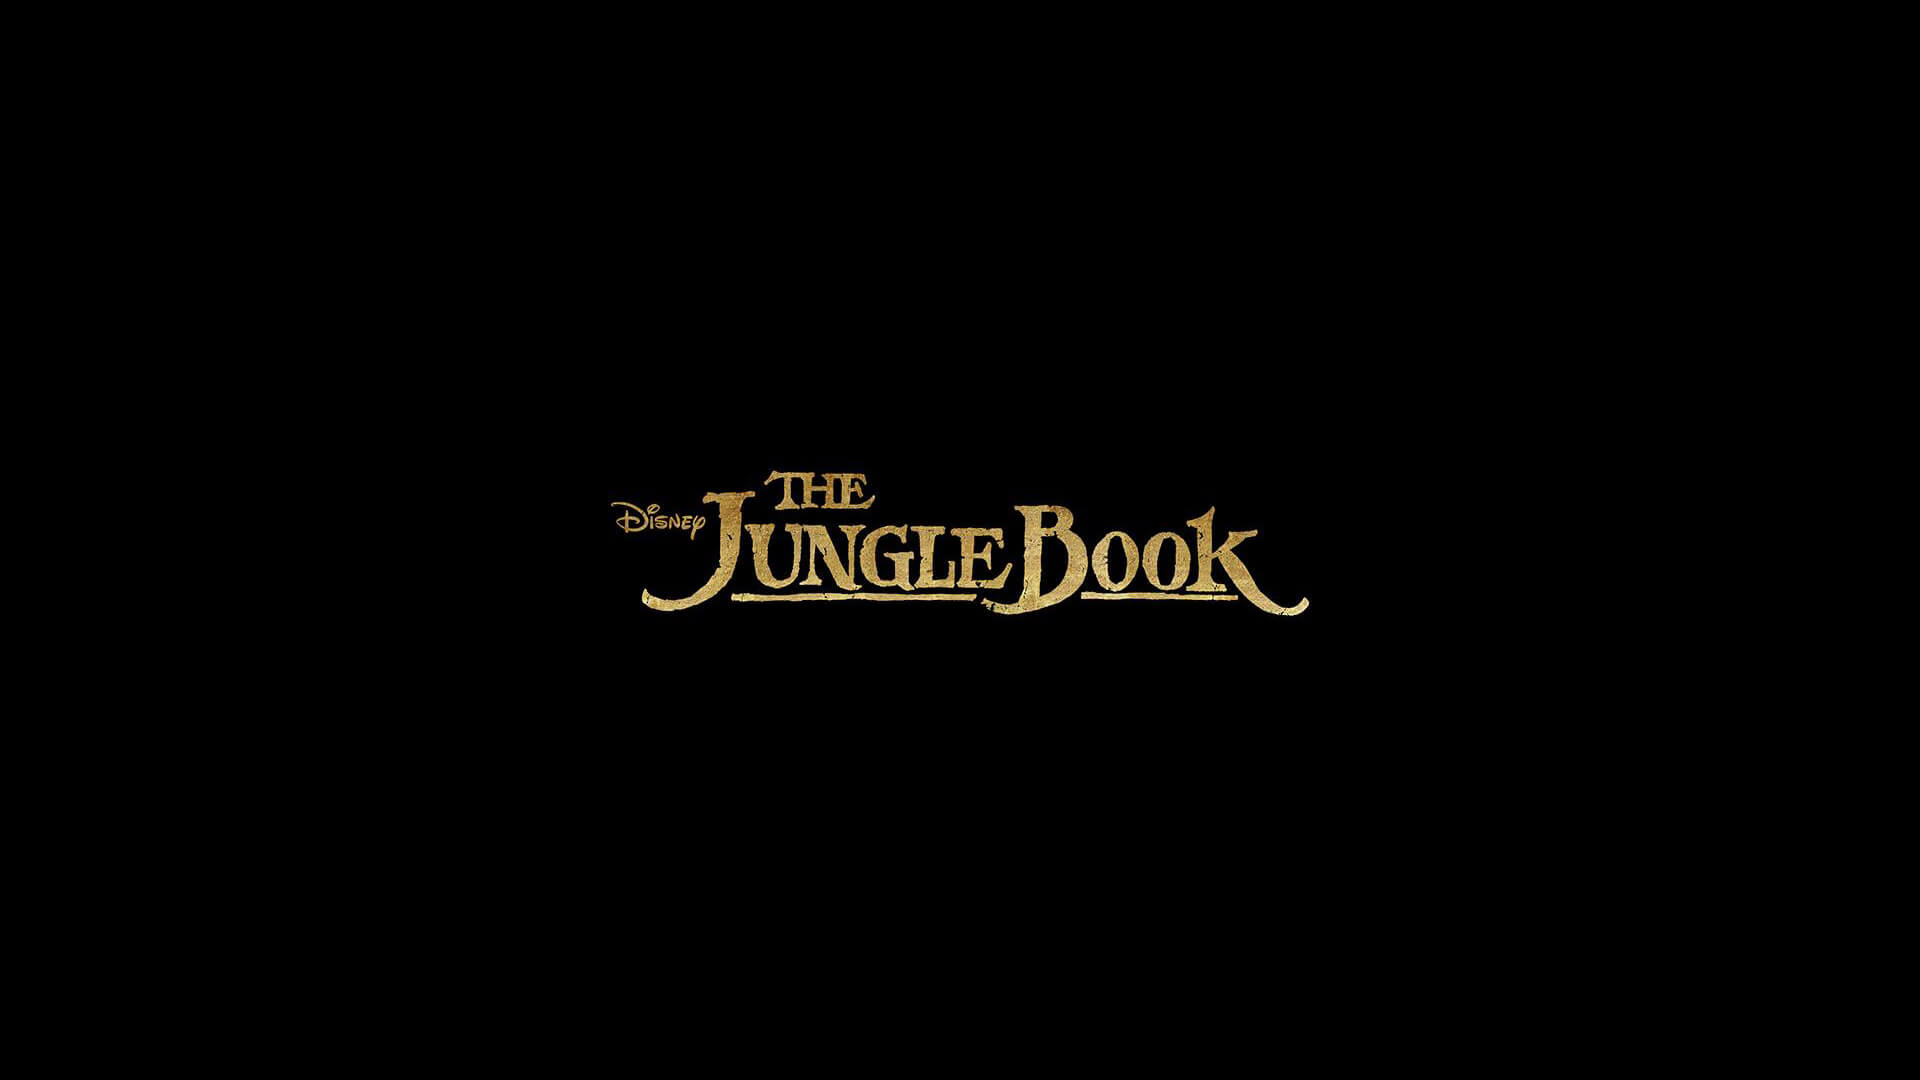 the jungle book movie logo wallpaper 51834